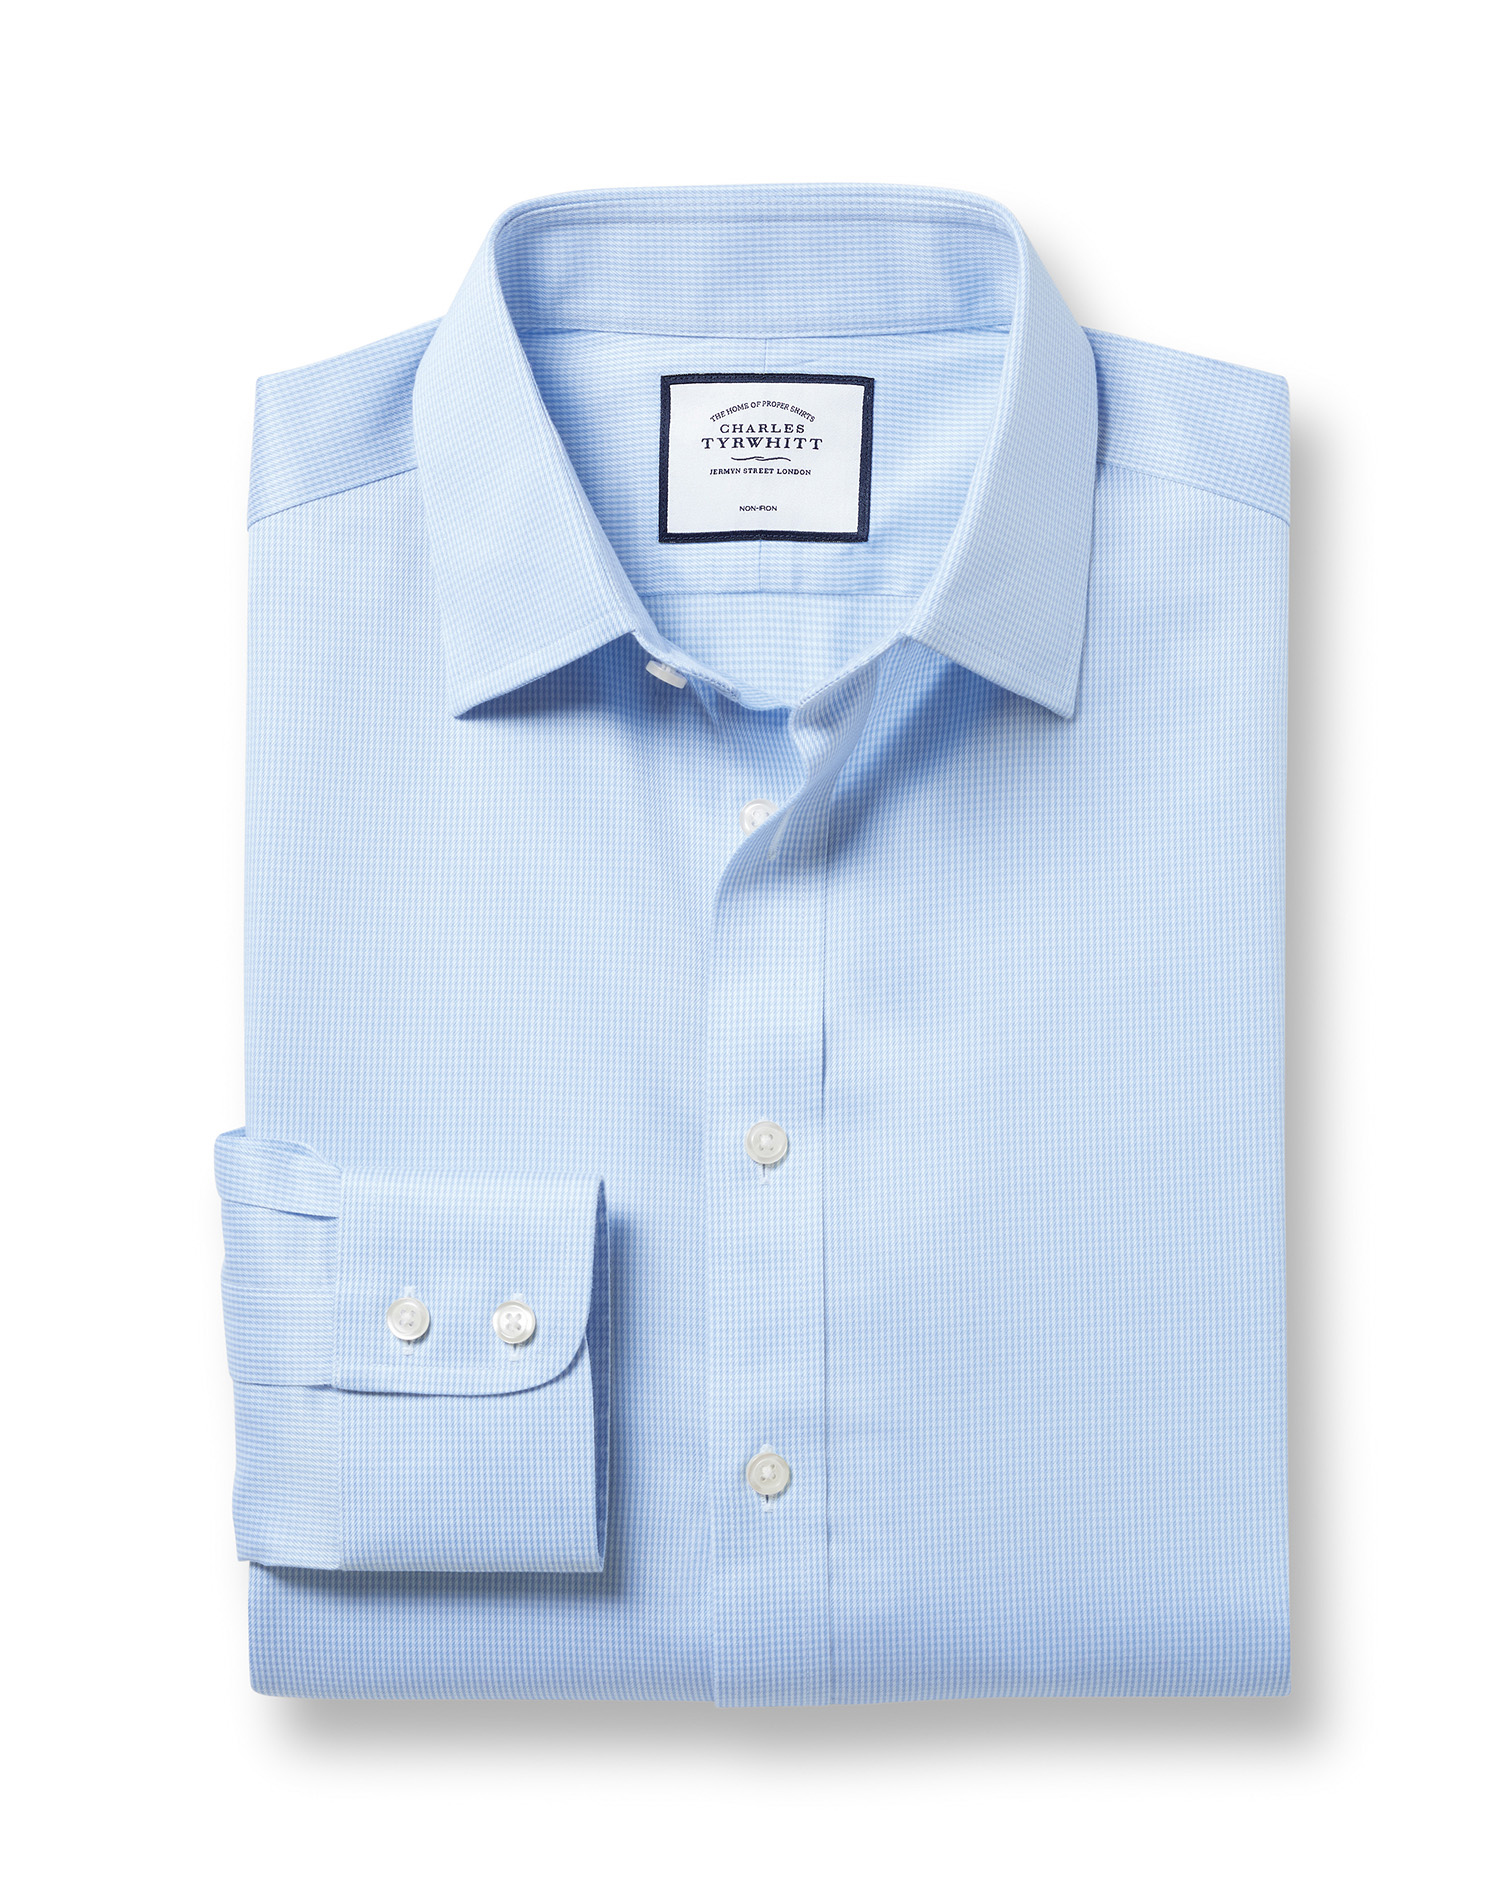 Classic Fit Non-Iron Puppytooth Sky Blue Cotton Formal Shirt Double Cuff Size 17.5/36 by Charles Tyr